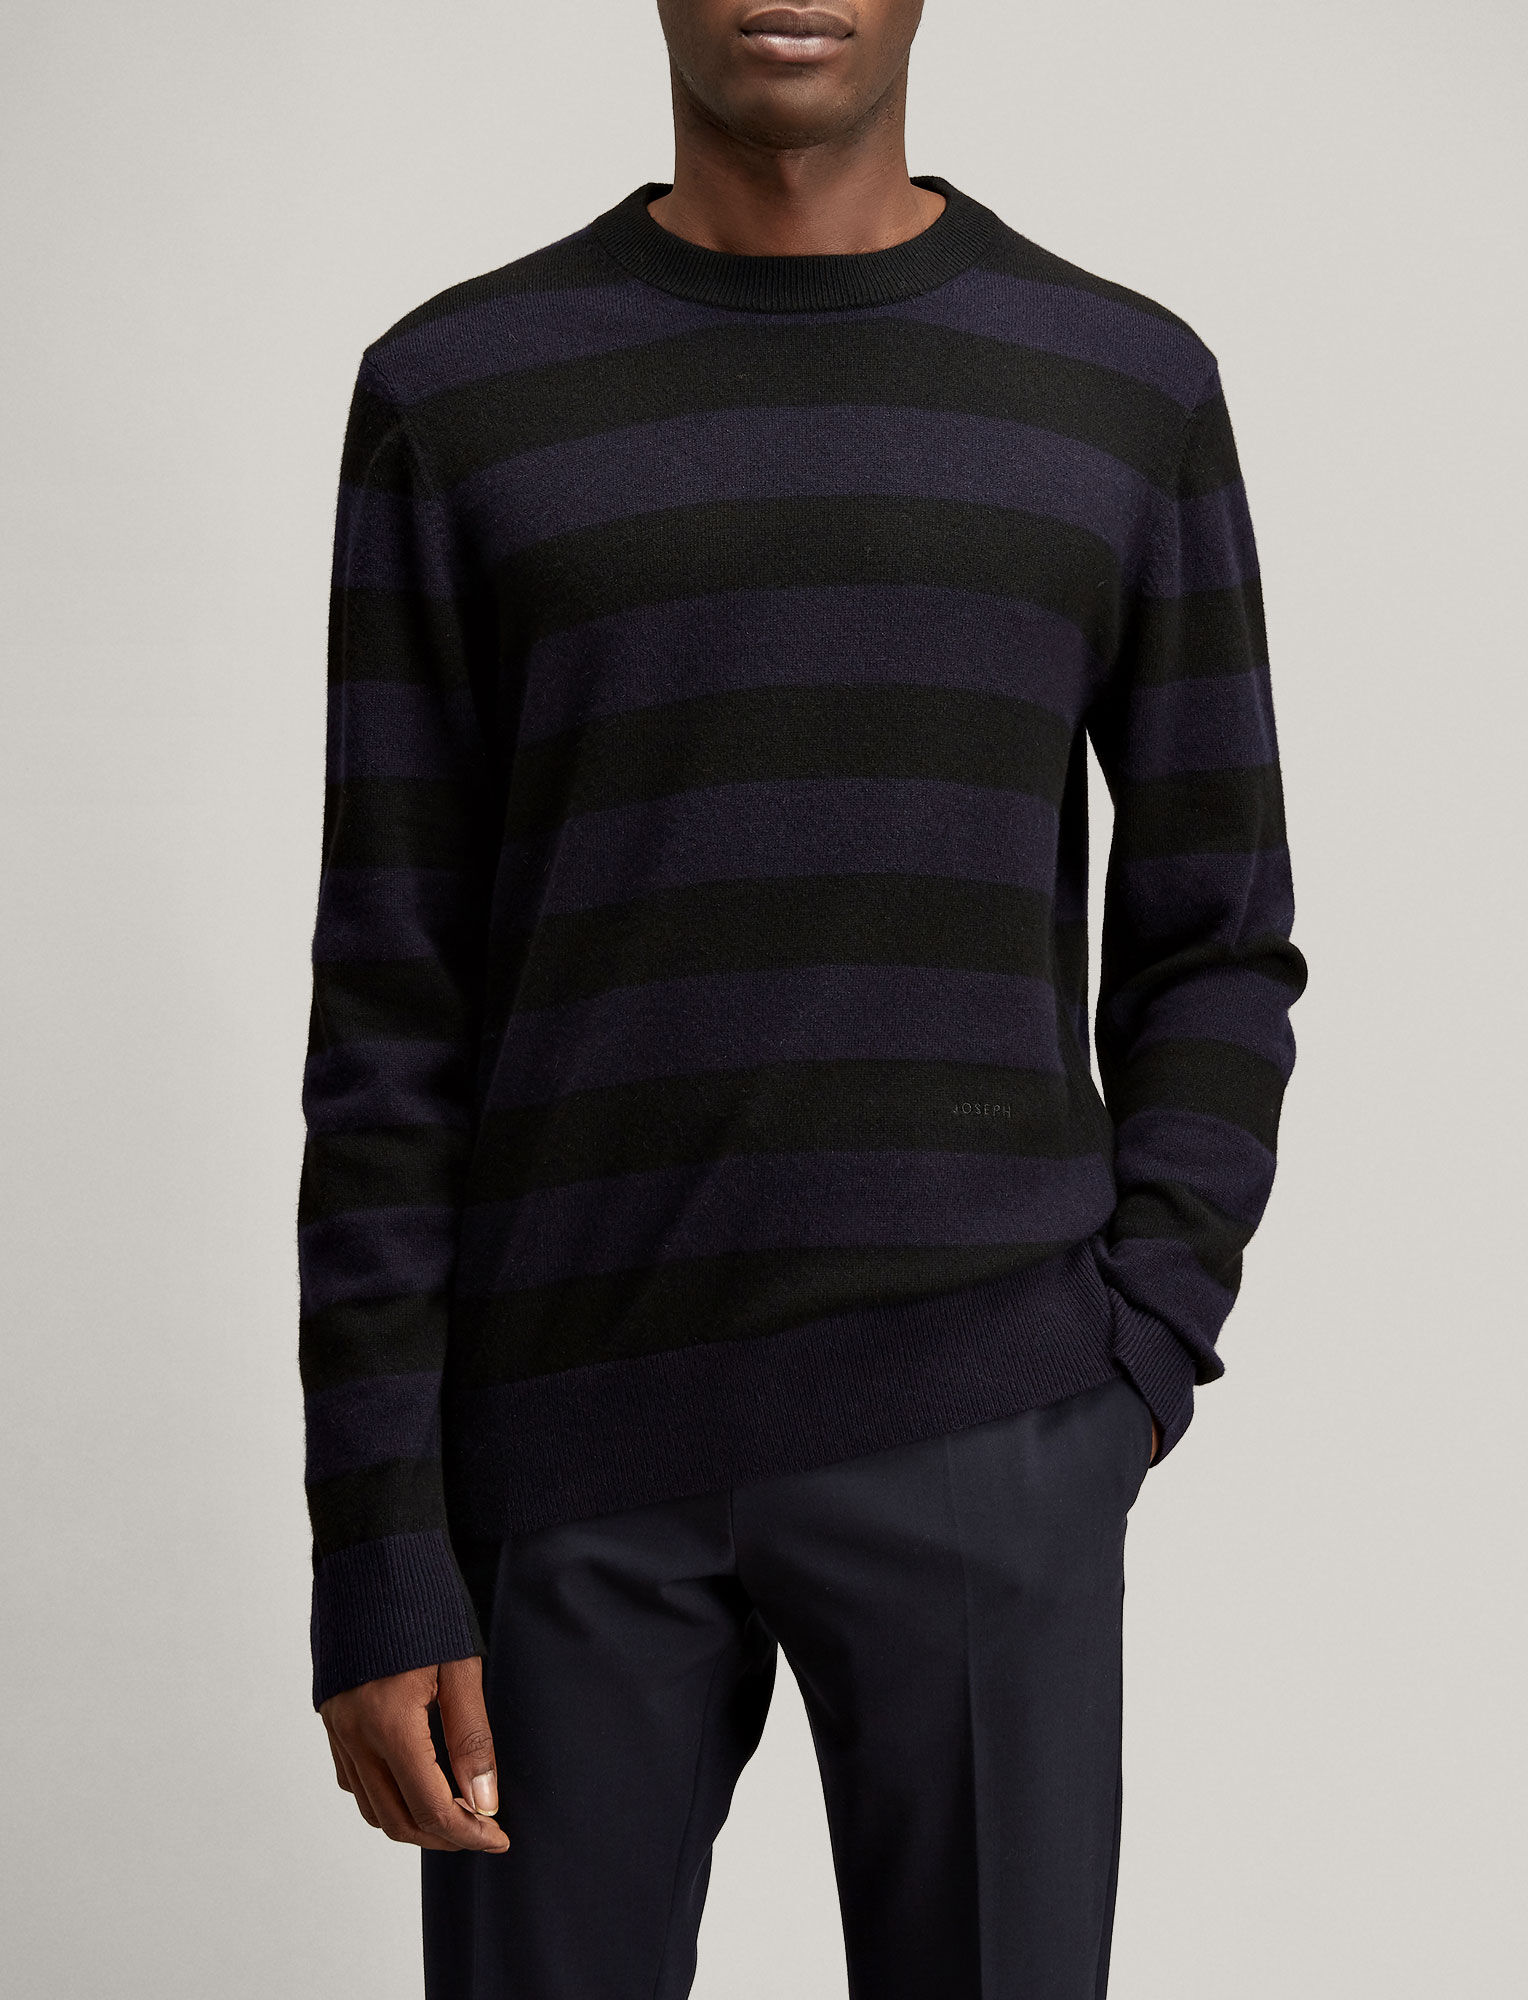 Joseph, Stripe Mongolian Cashmere Knit, in BLACK/NAVY